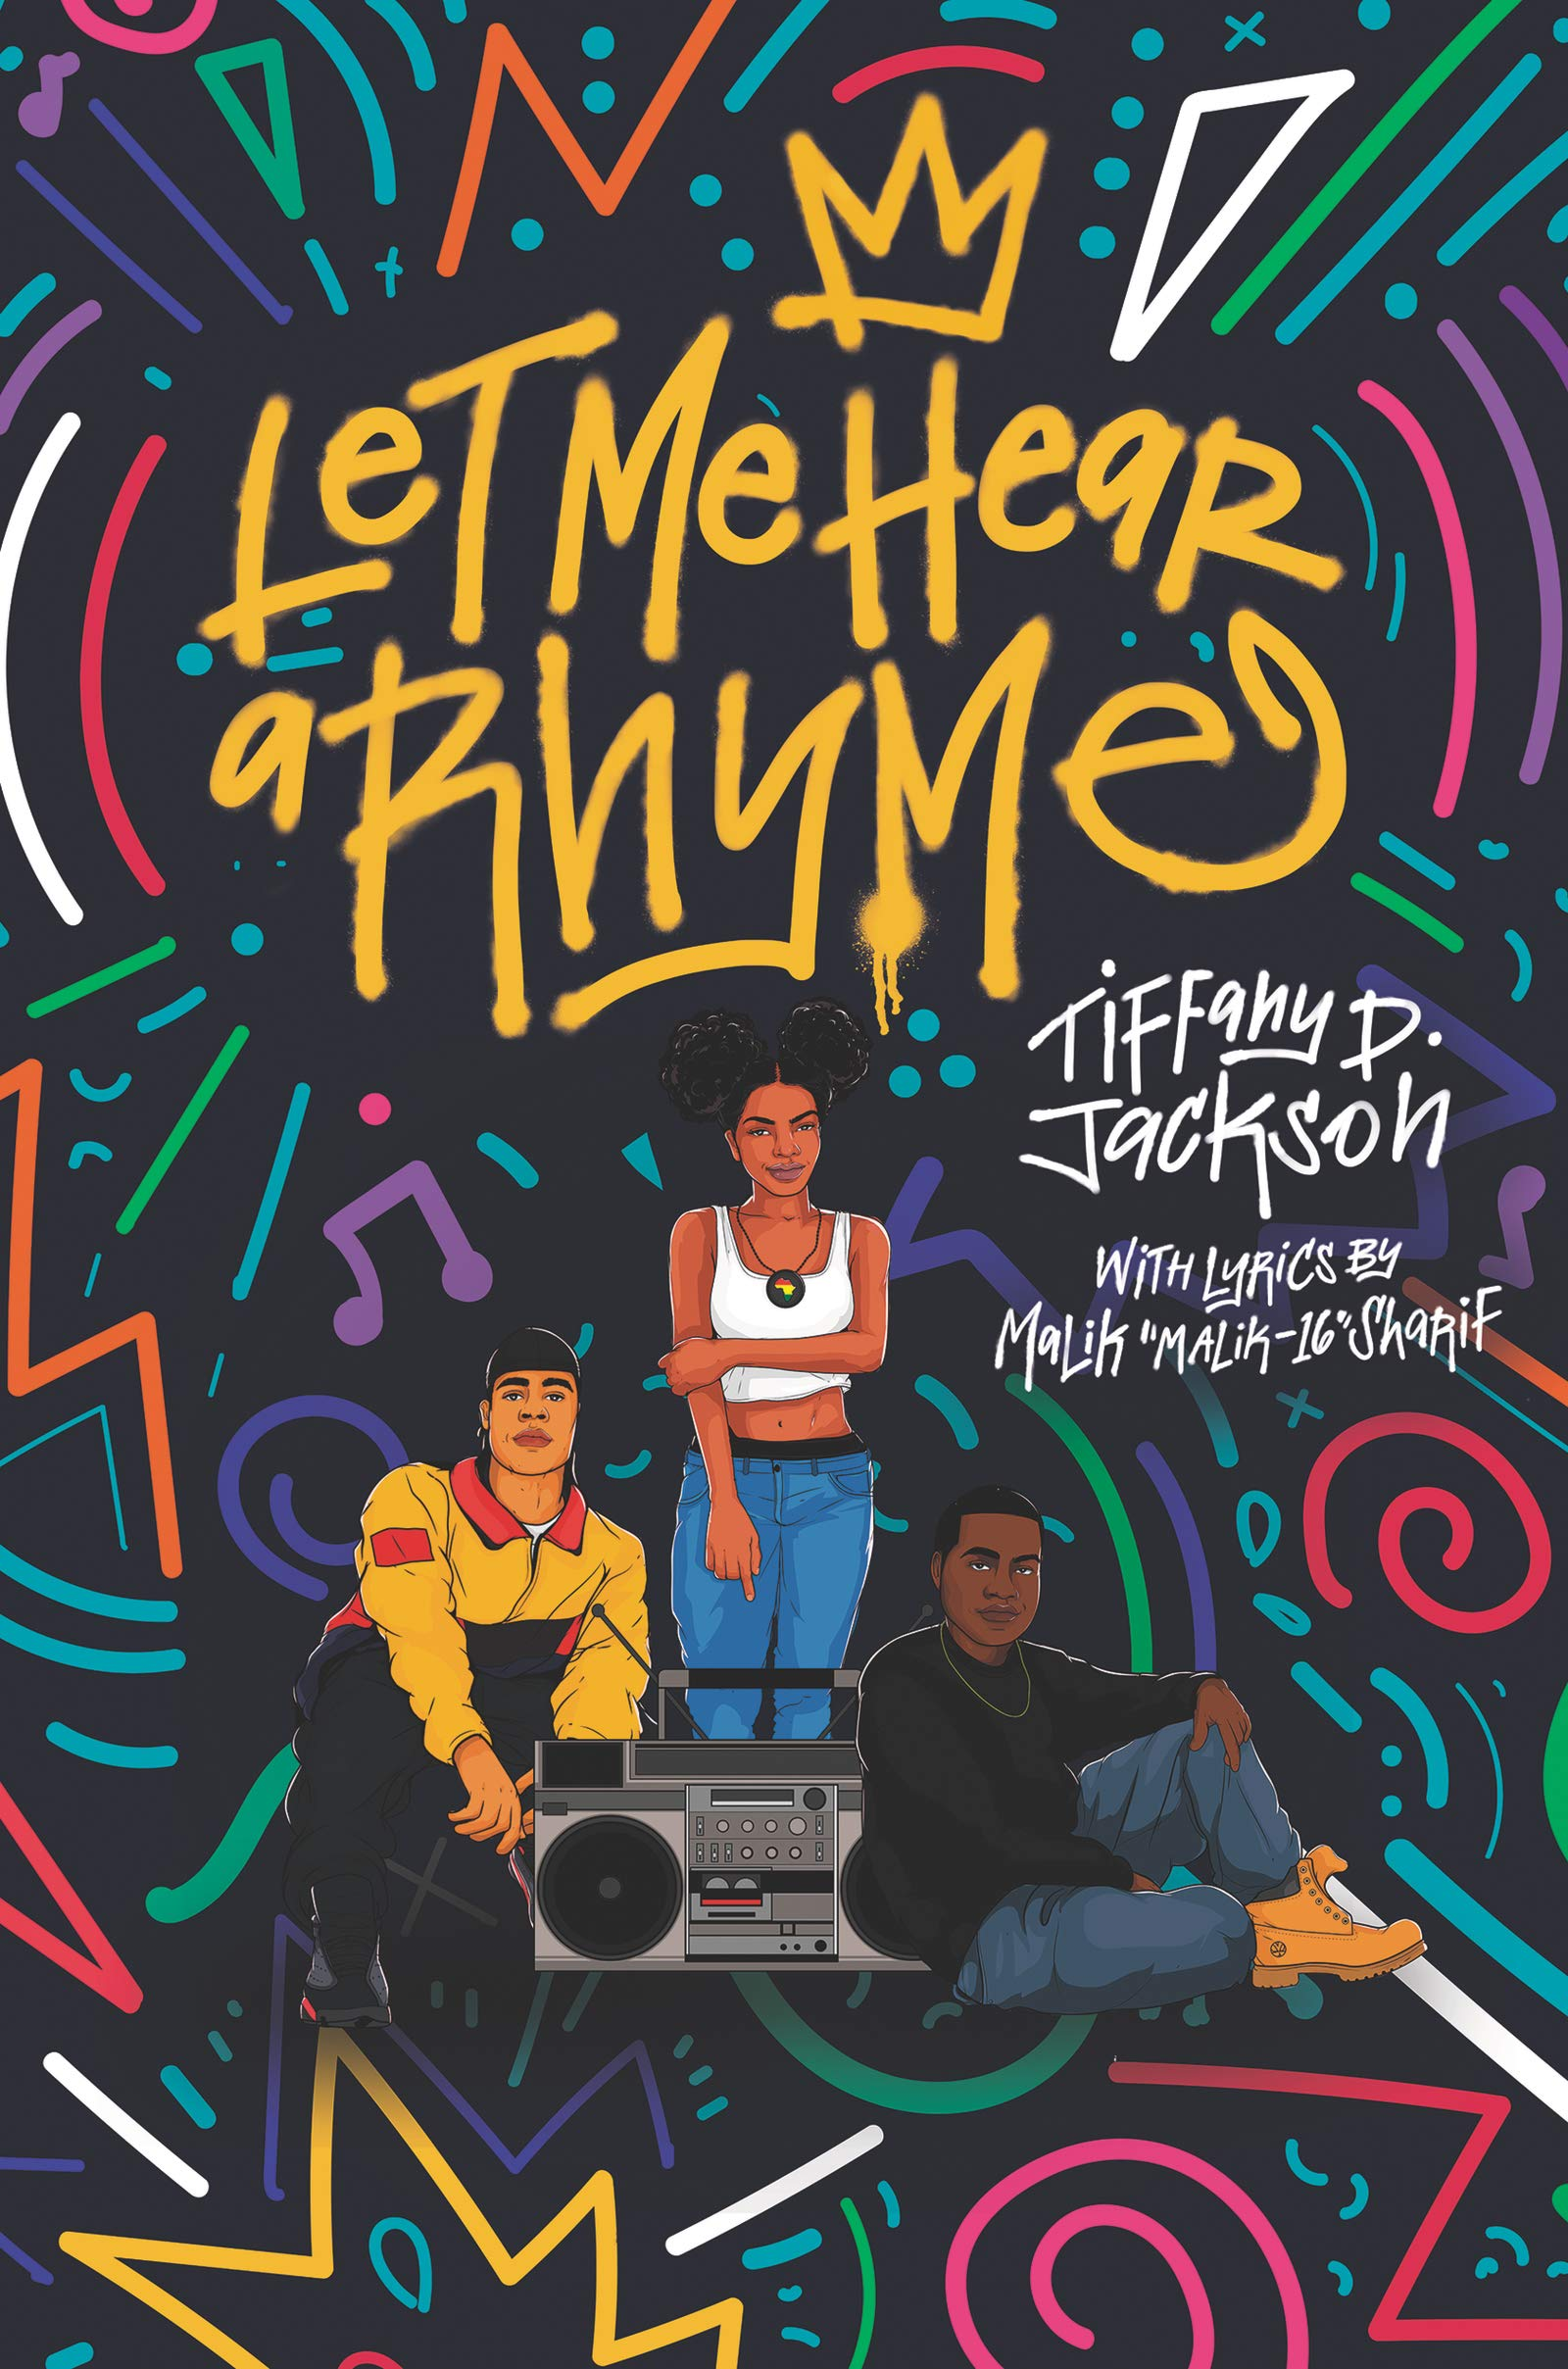 Amazon.com: Let Me Hear a Rhyme (9780062840325): Jackson, Tiffany D: Books